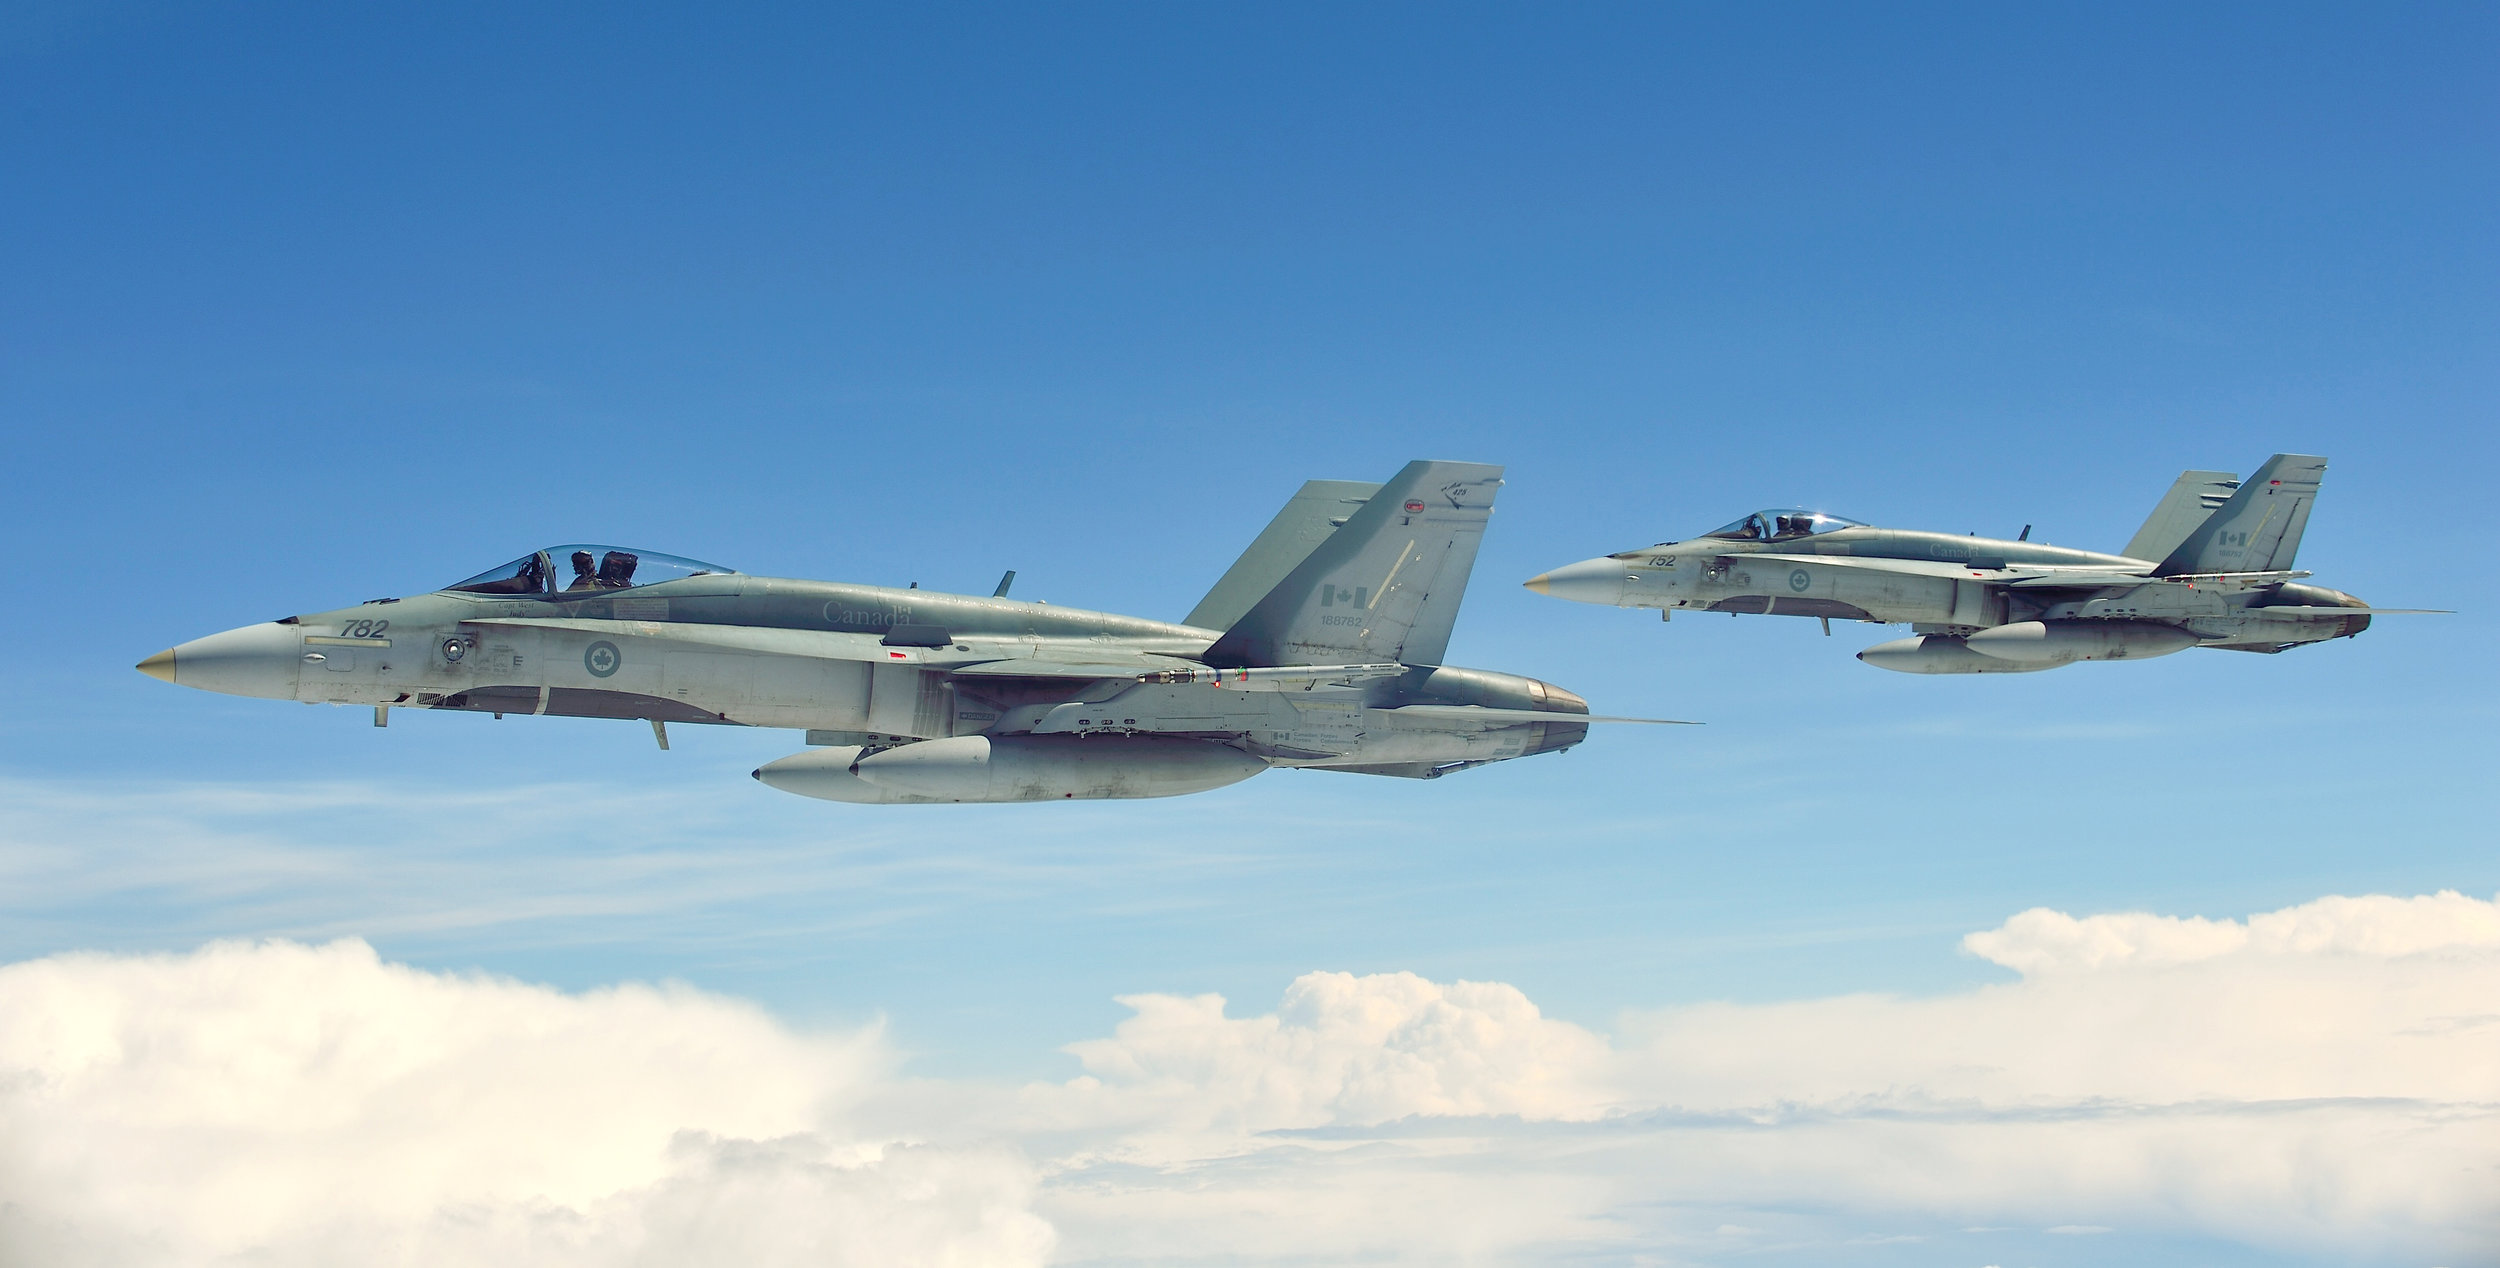 A comparative study of two air forces: Are Sweden and Canada similar